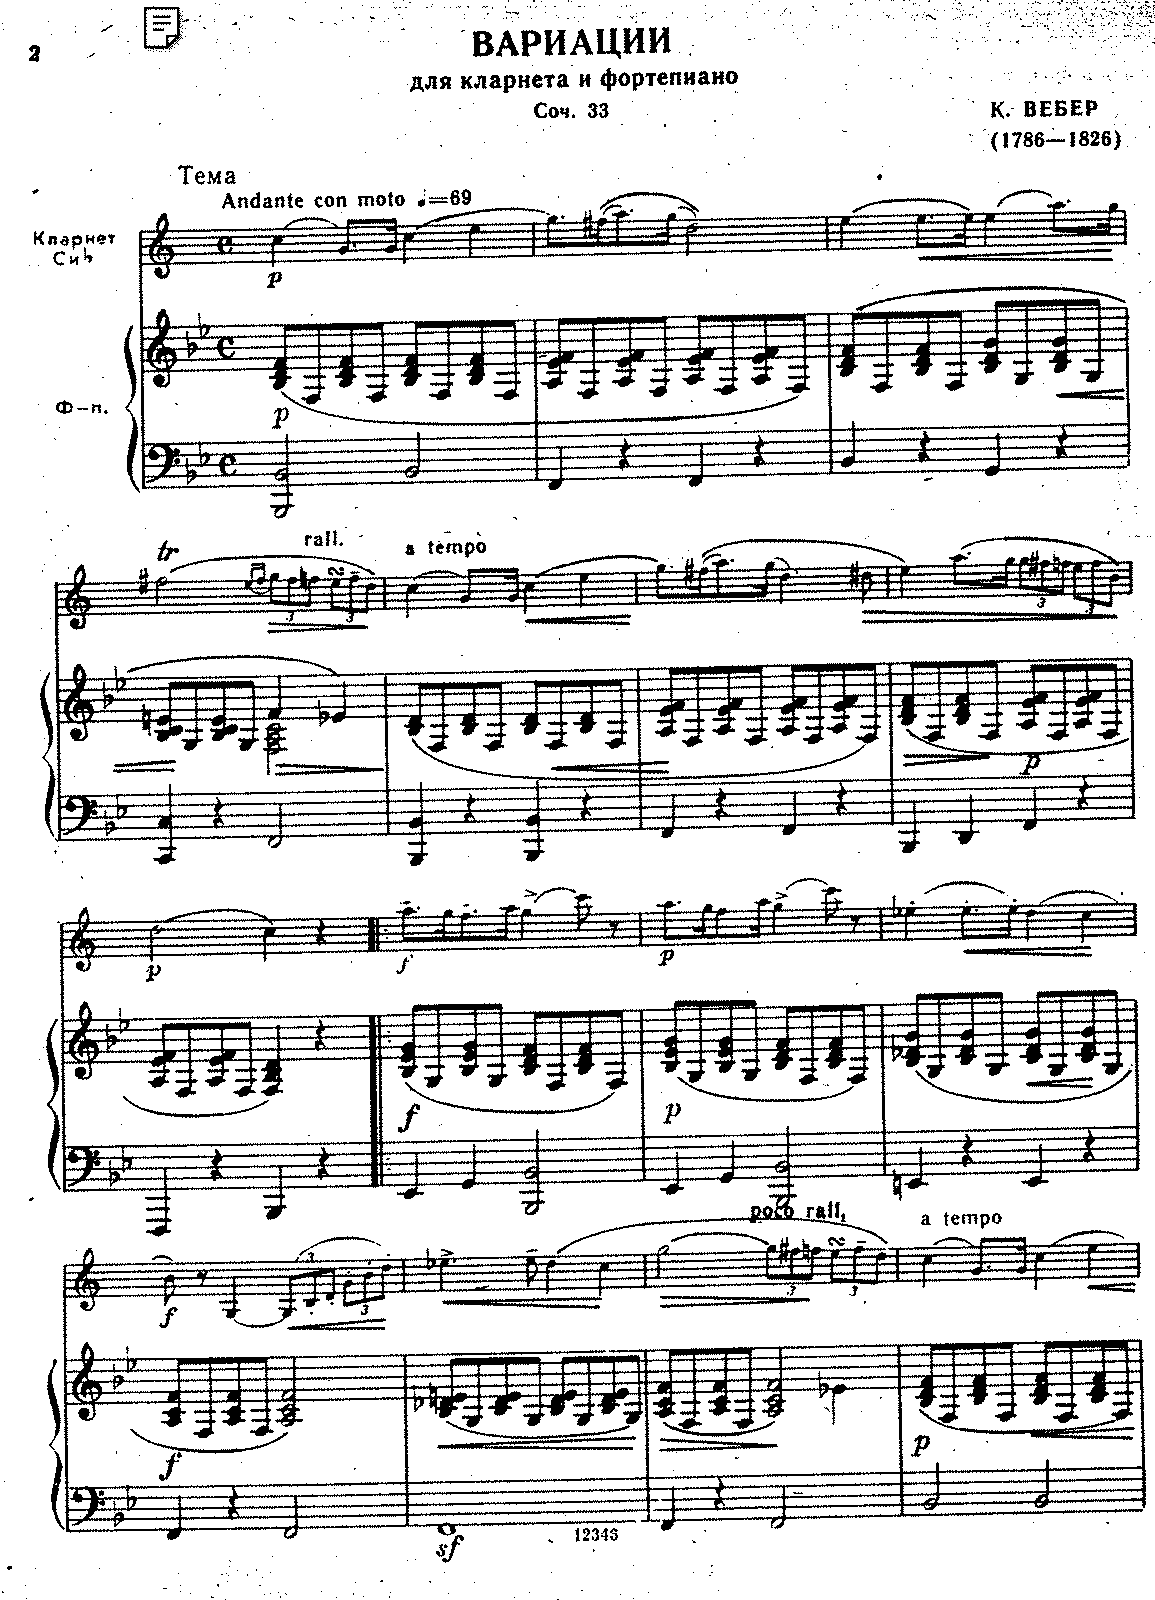 C.M. von Weber (1786-1826) Variations for Clarinet and Piano.pdf